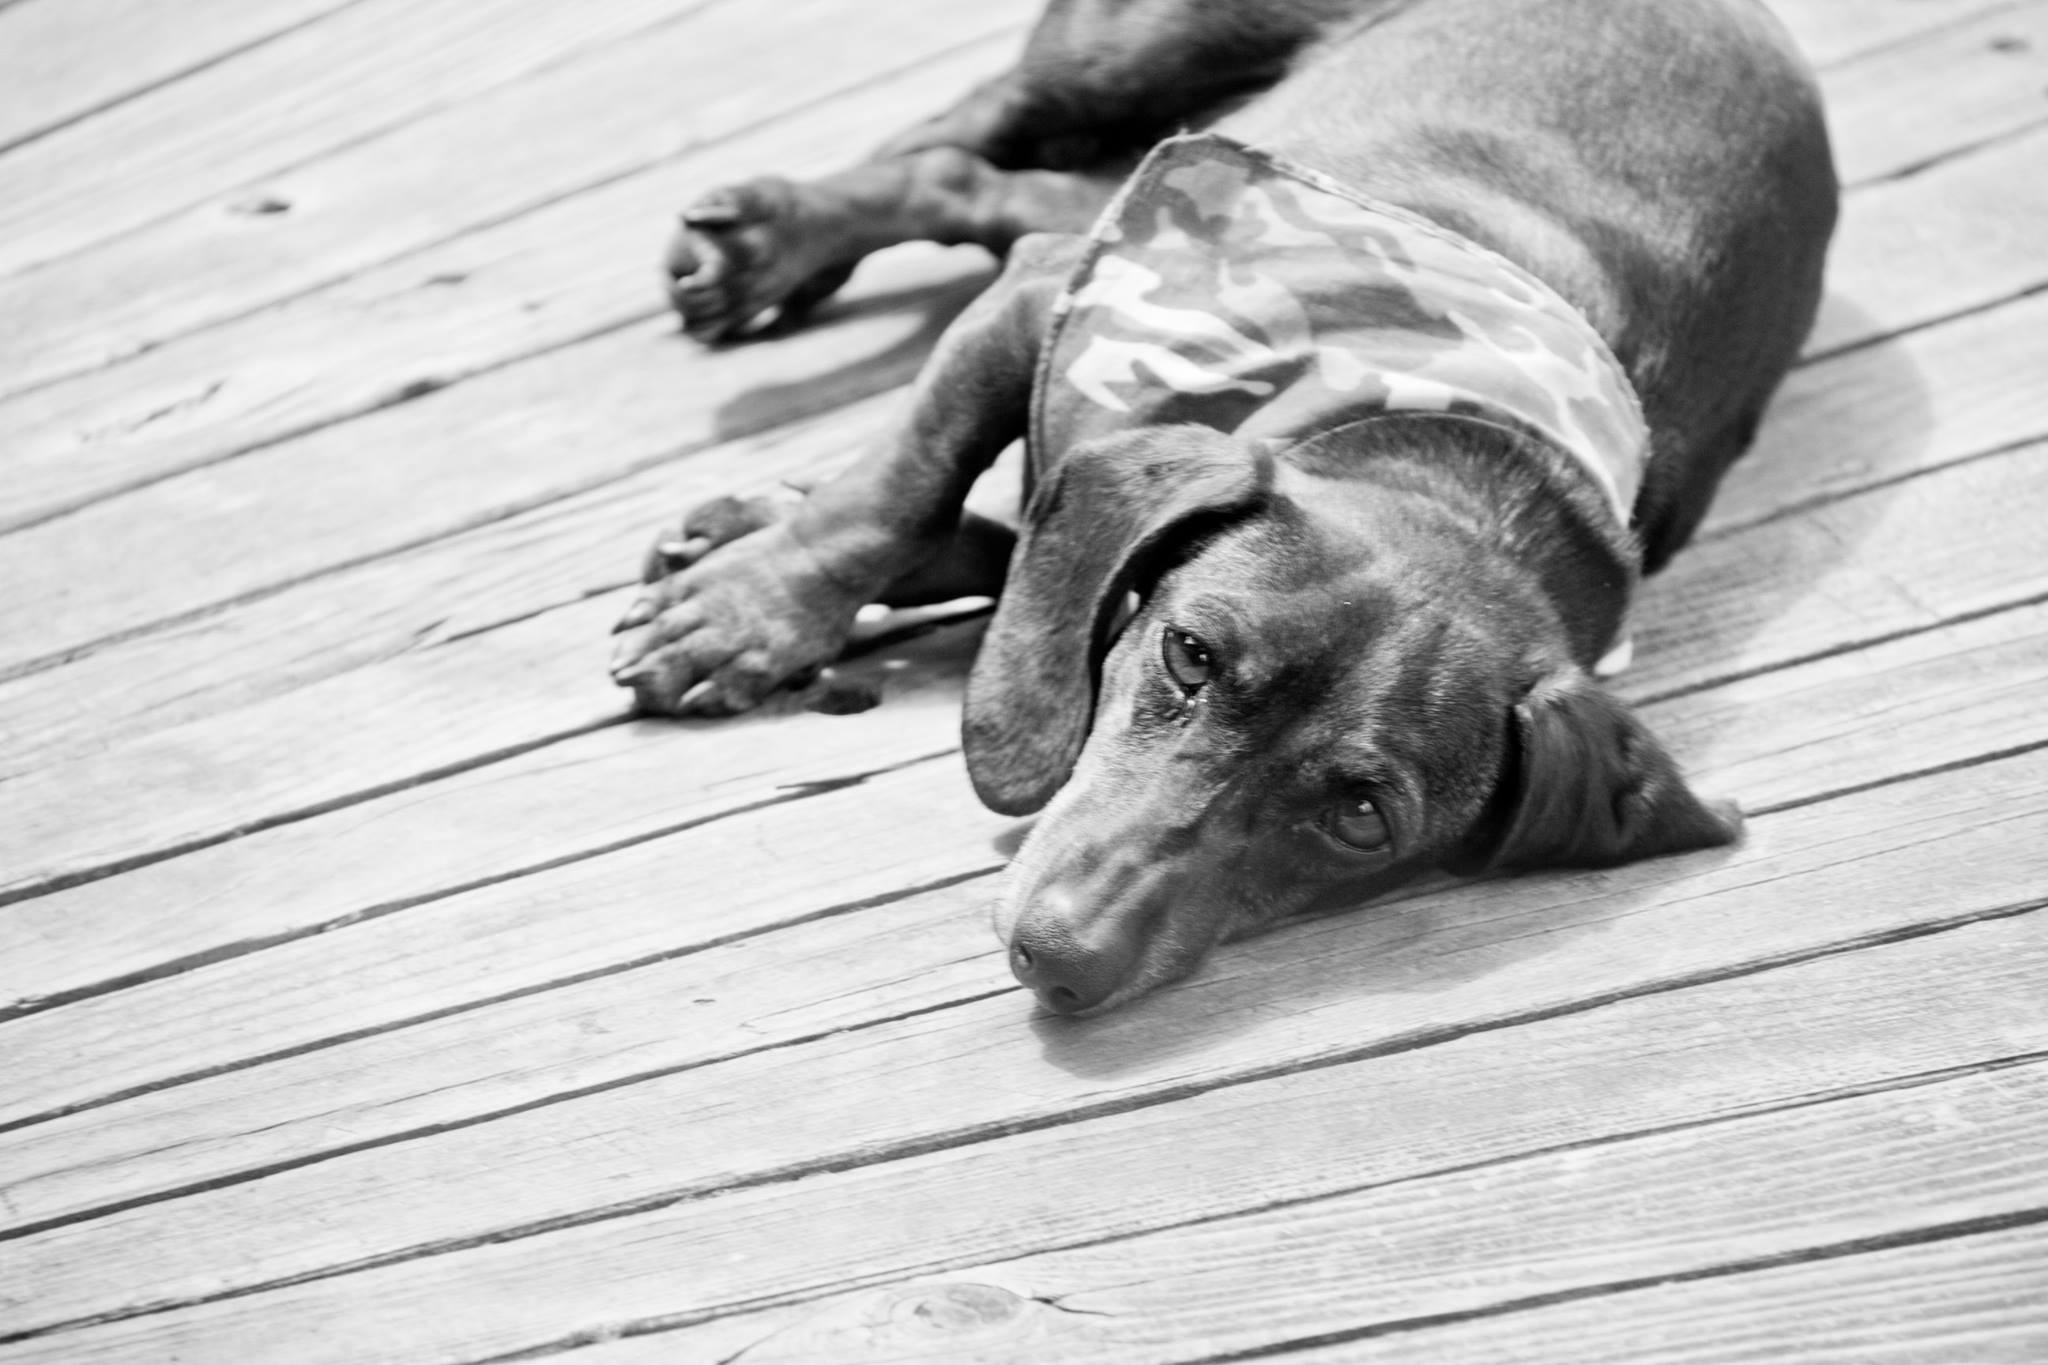 dachshund lying down looking at the camera